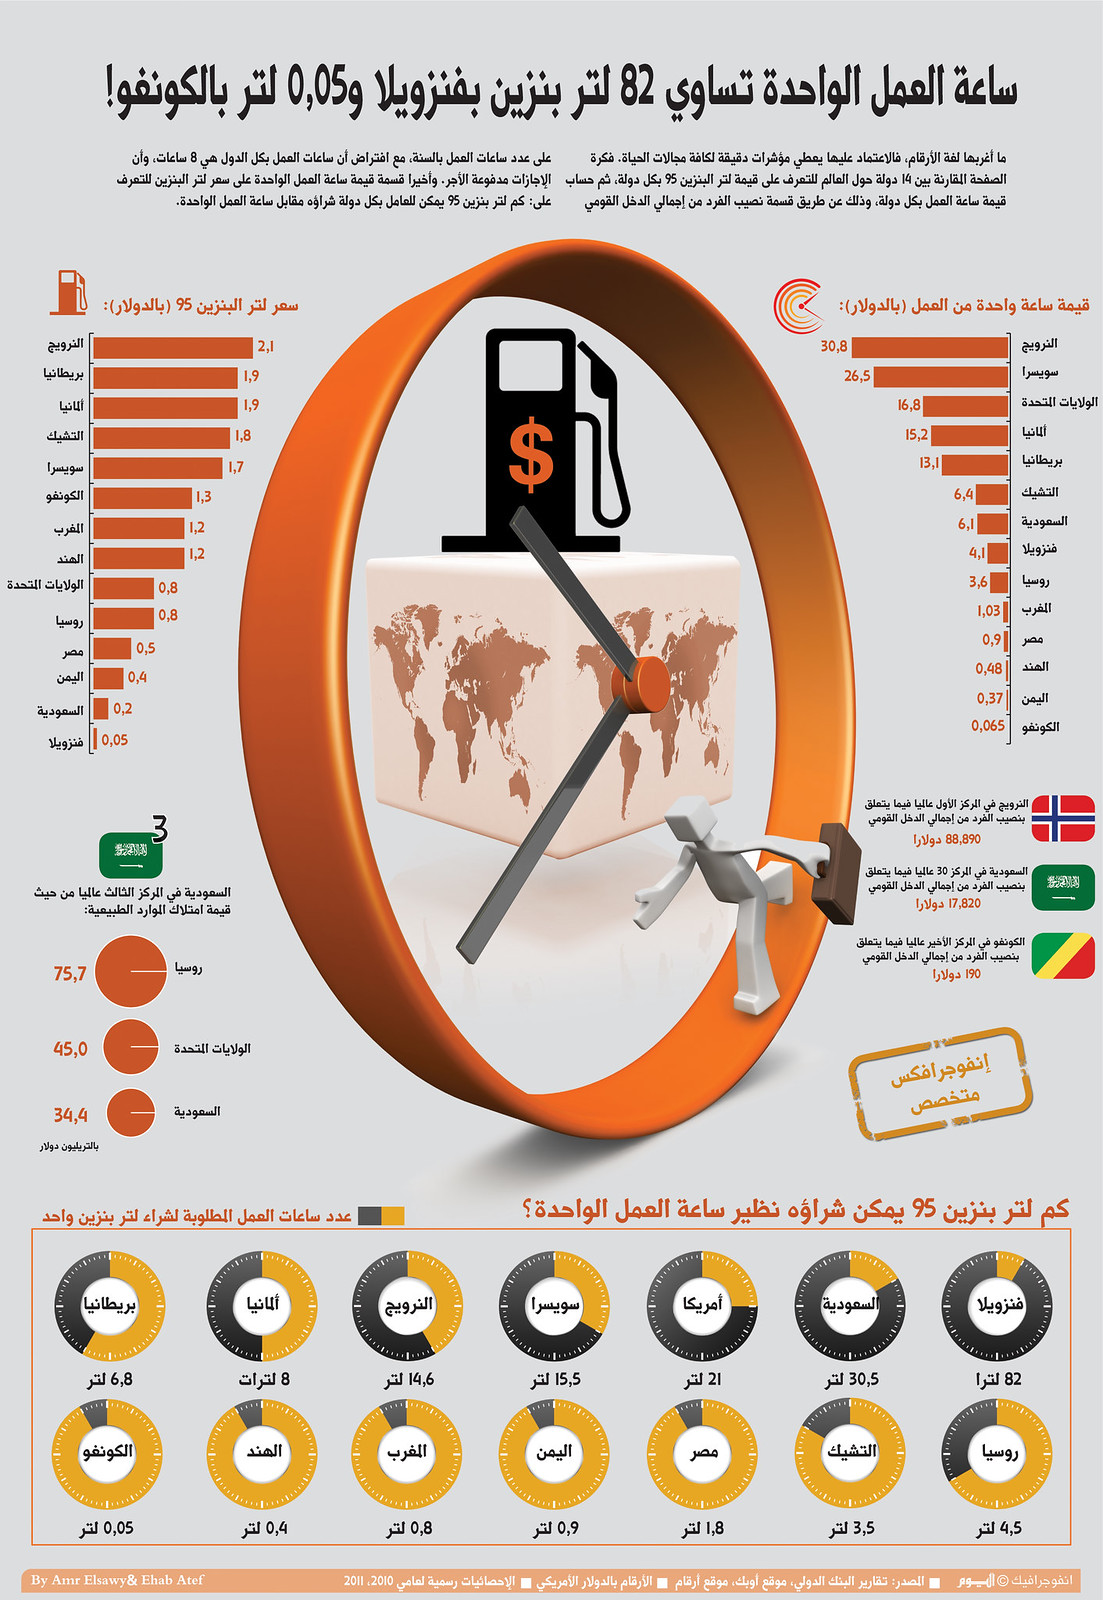 How many hours you need to work to buy one liter of gasoline?, infographic by Amr Elsawy